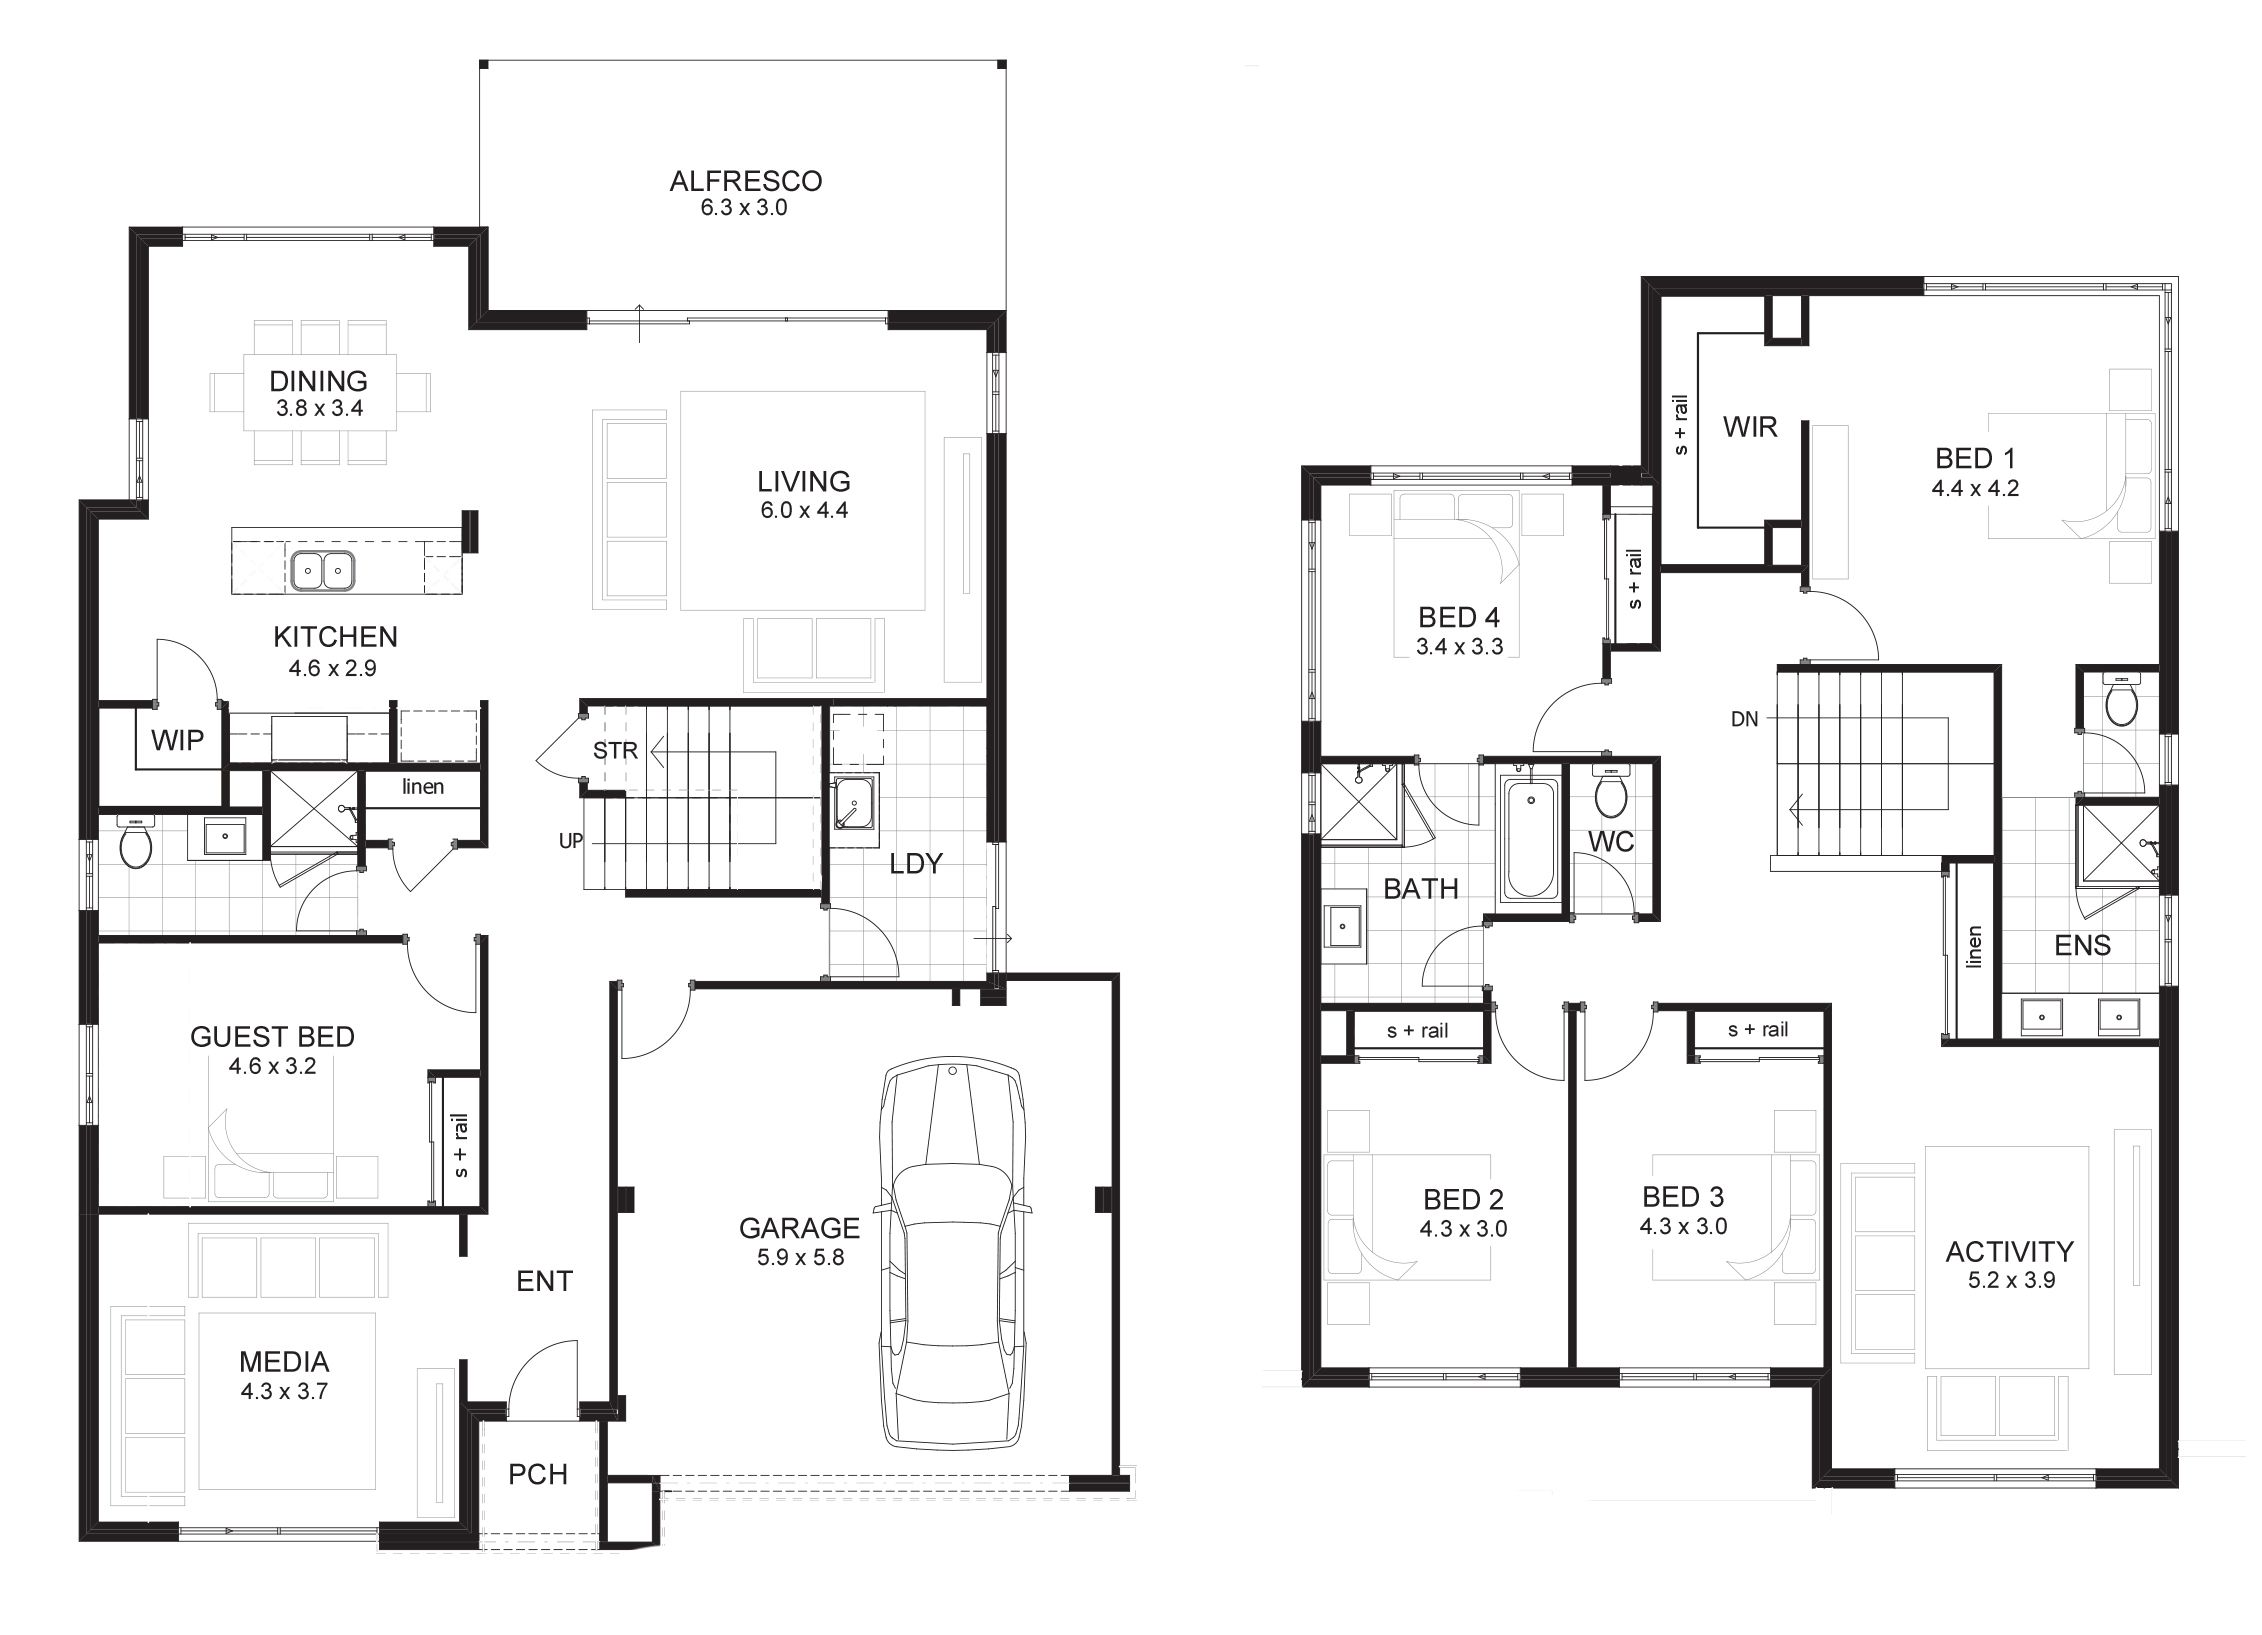 6 bedroom house plans perth pinterest for 3 bathroom house plans perth